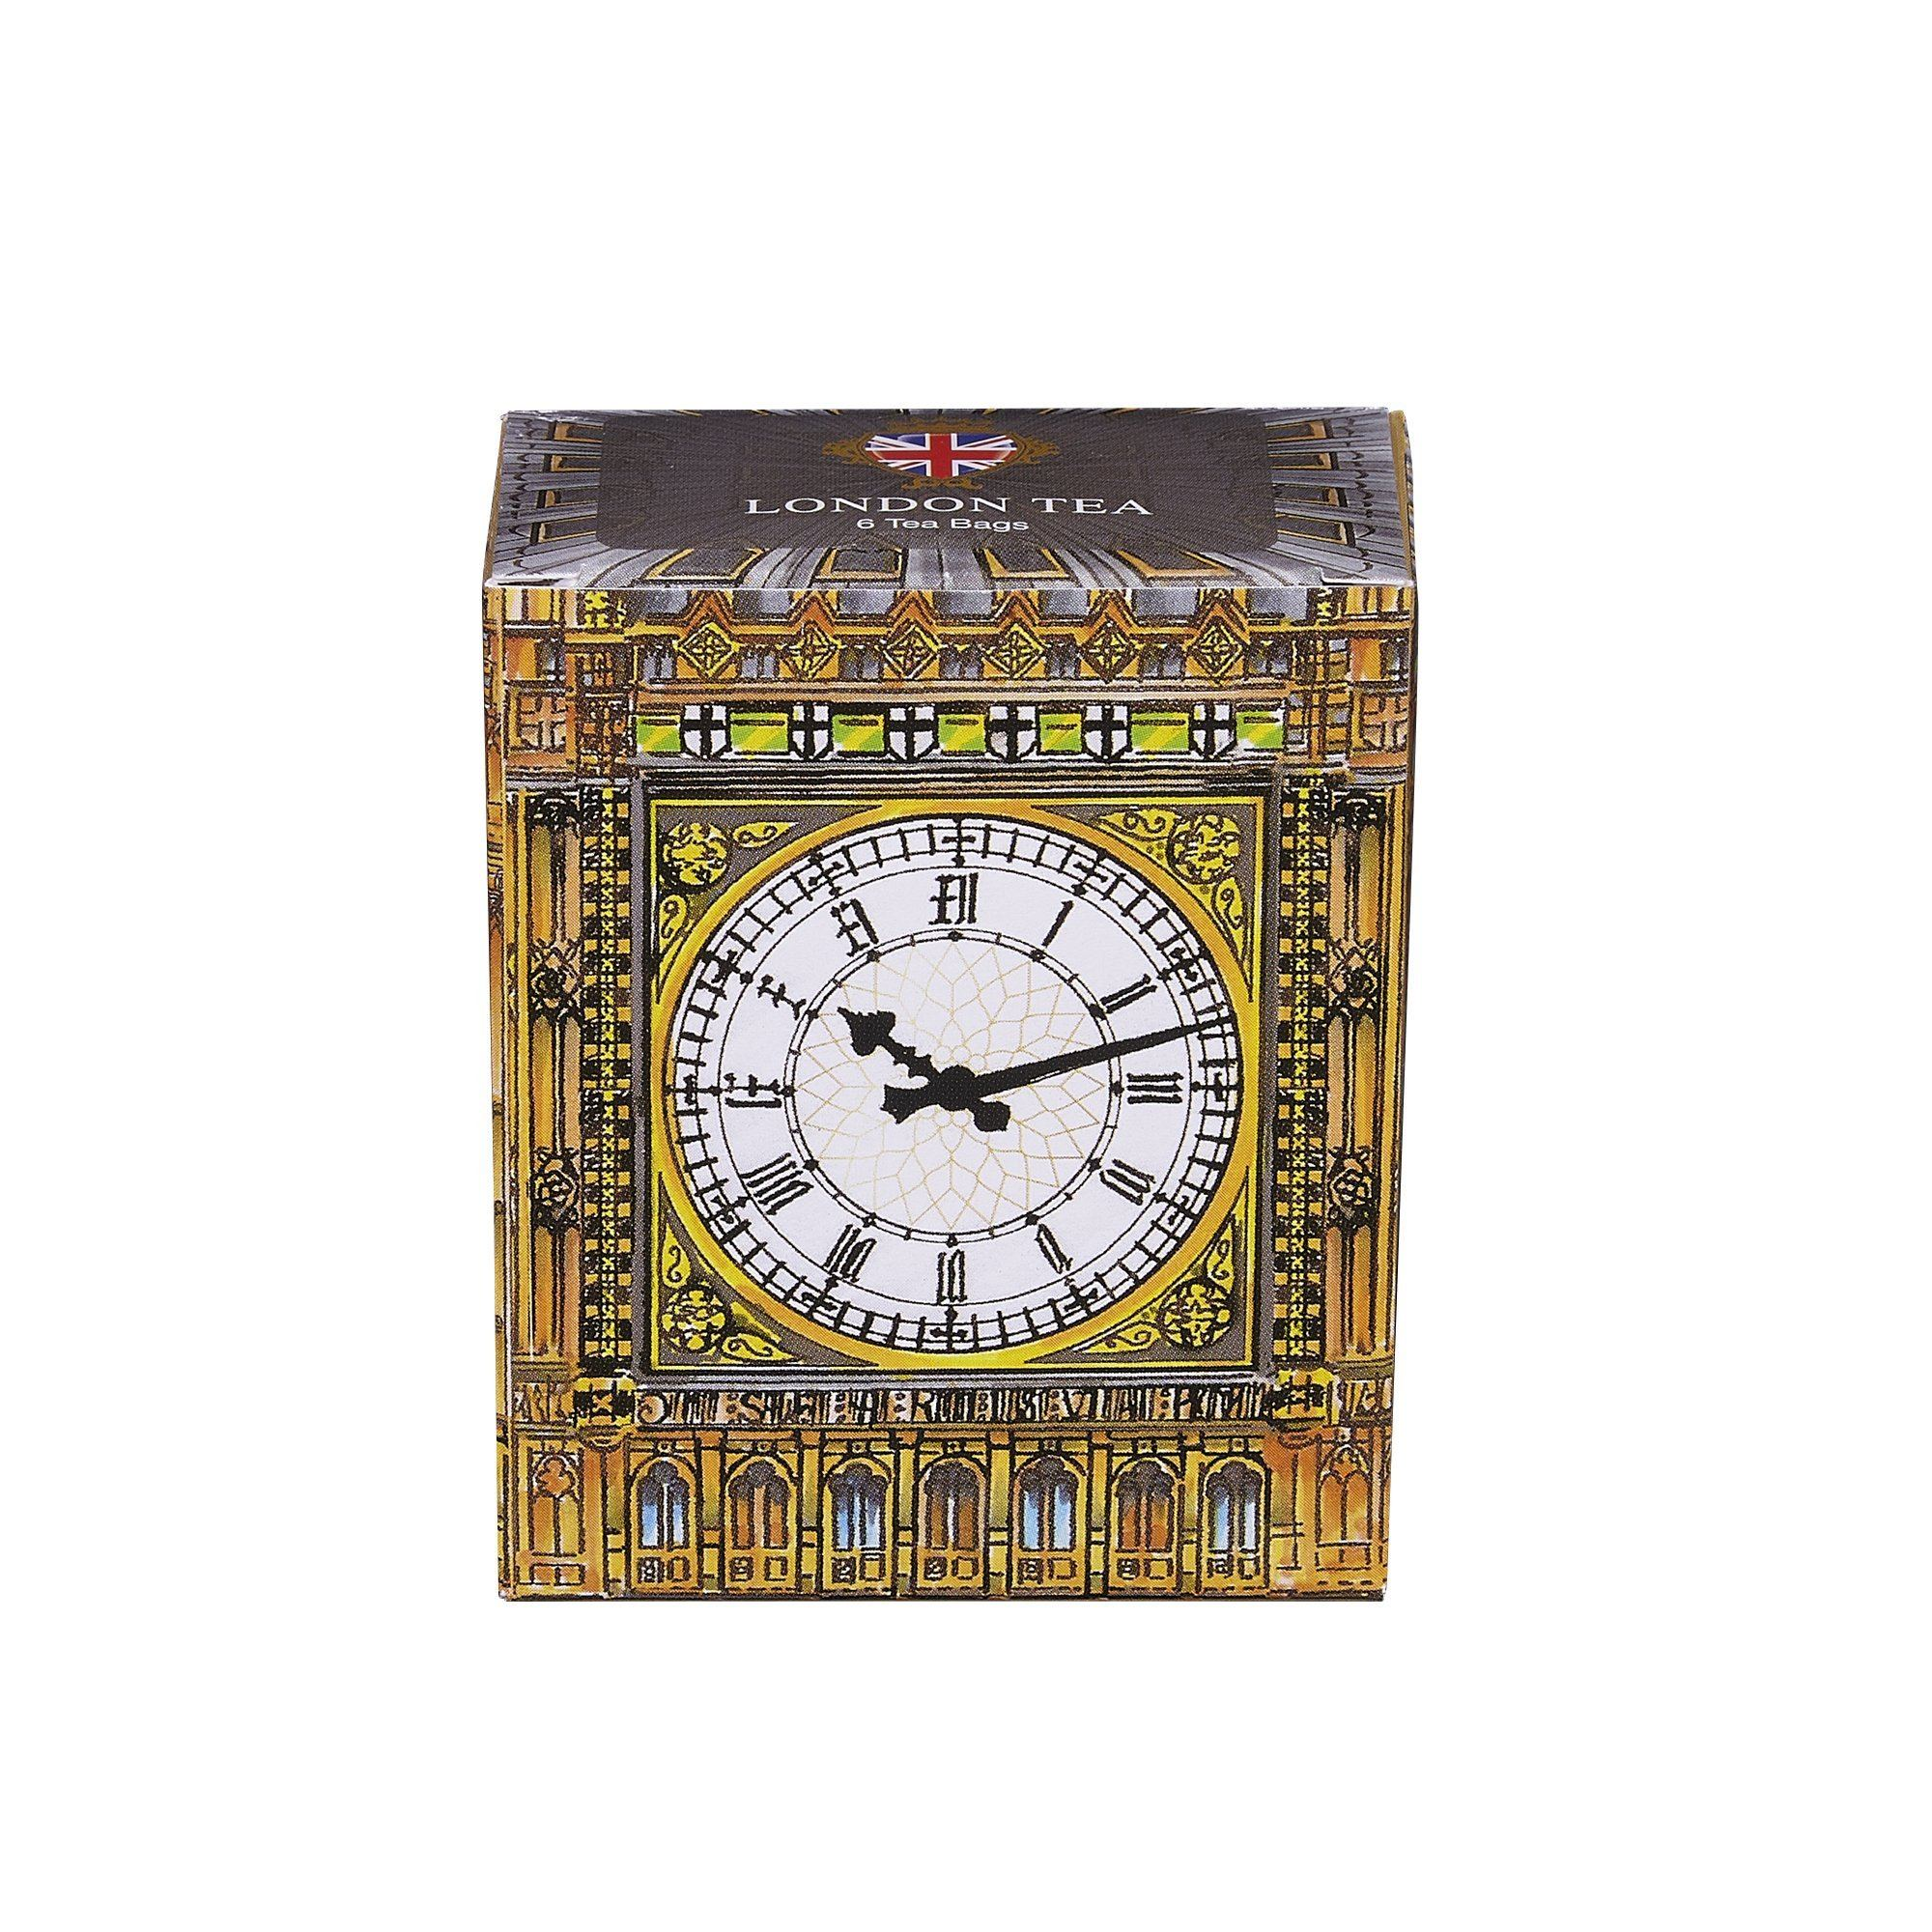 Big Ben London Tea 6 Teabag Carton Black Tea New English Teas